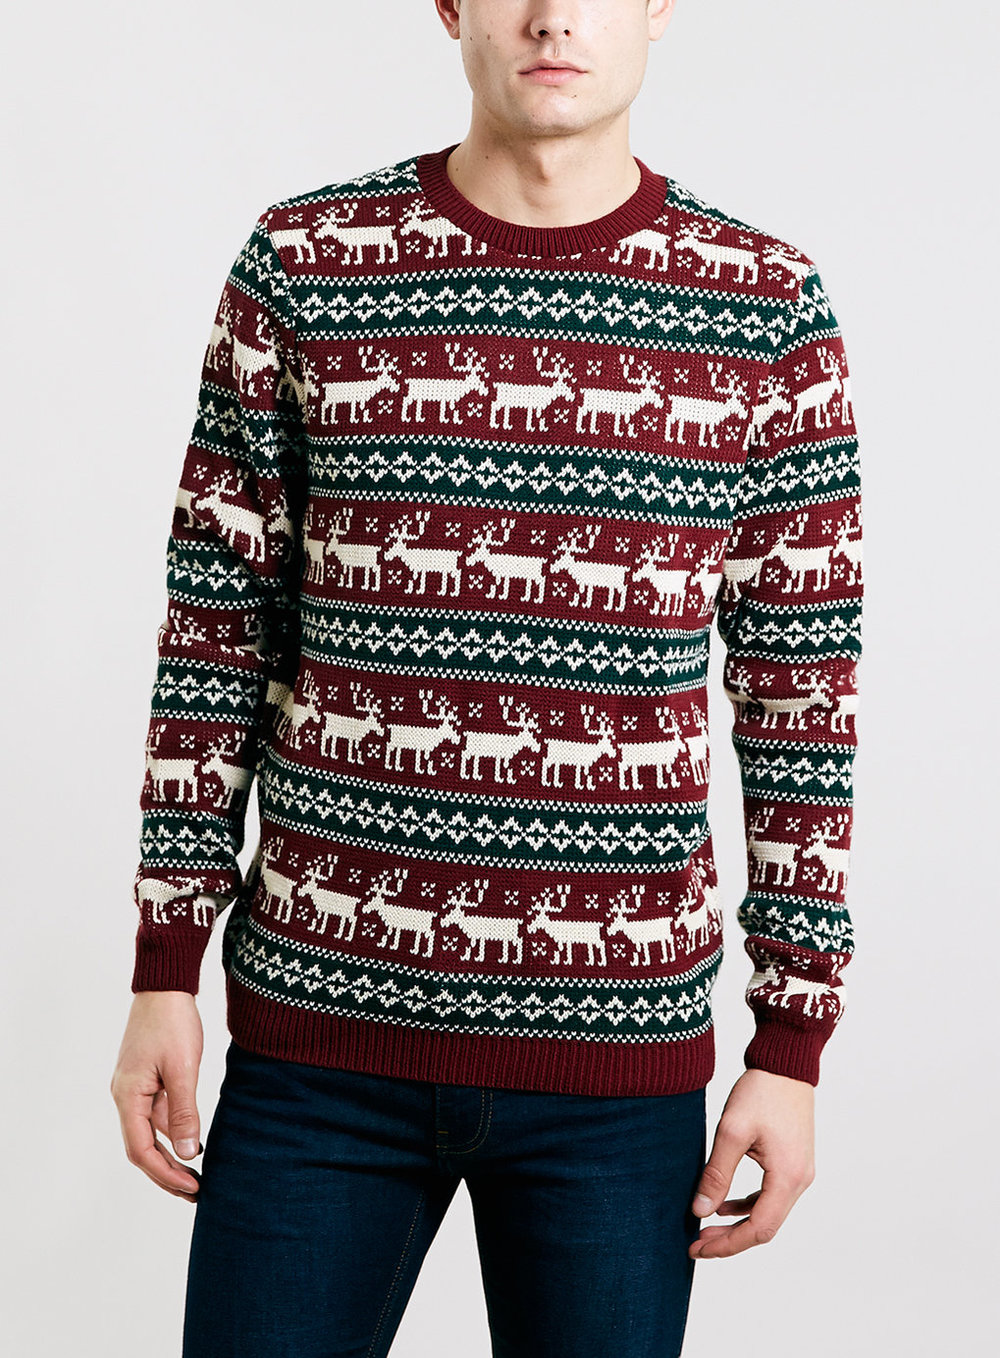 Boxed Reindeer Crossing Christmas Sweater , was $55, now $44